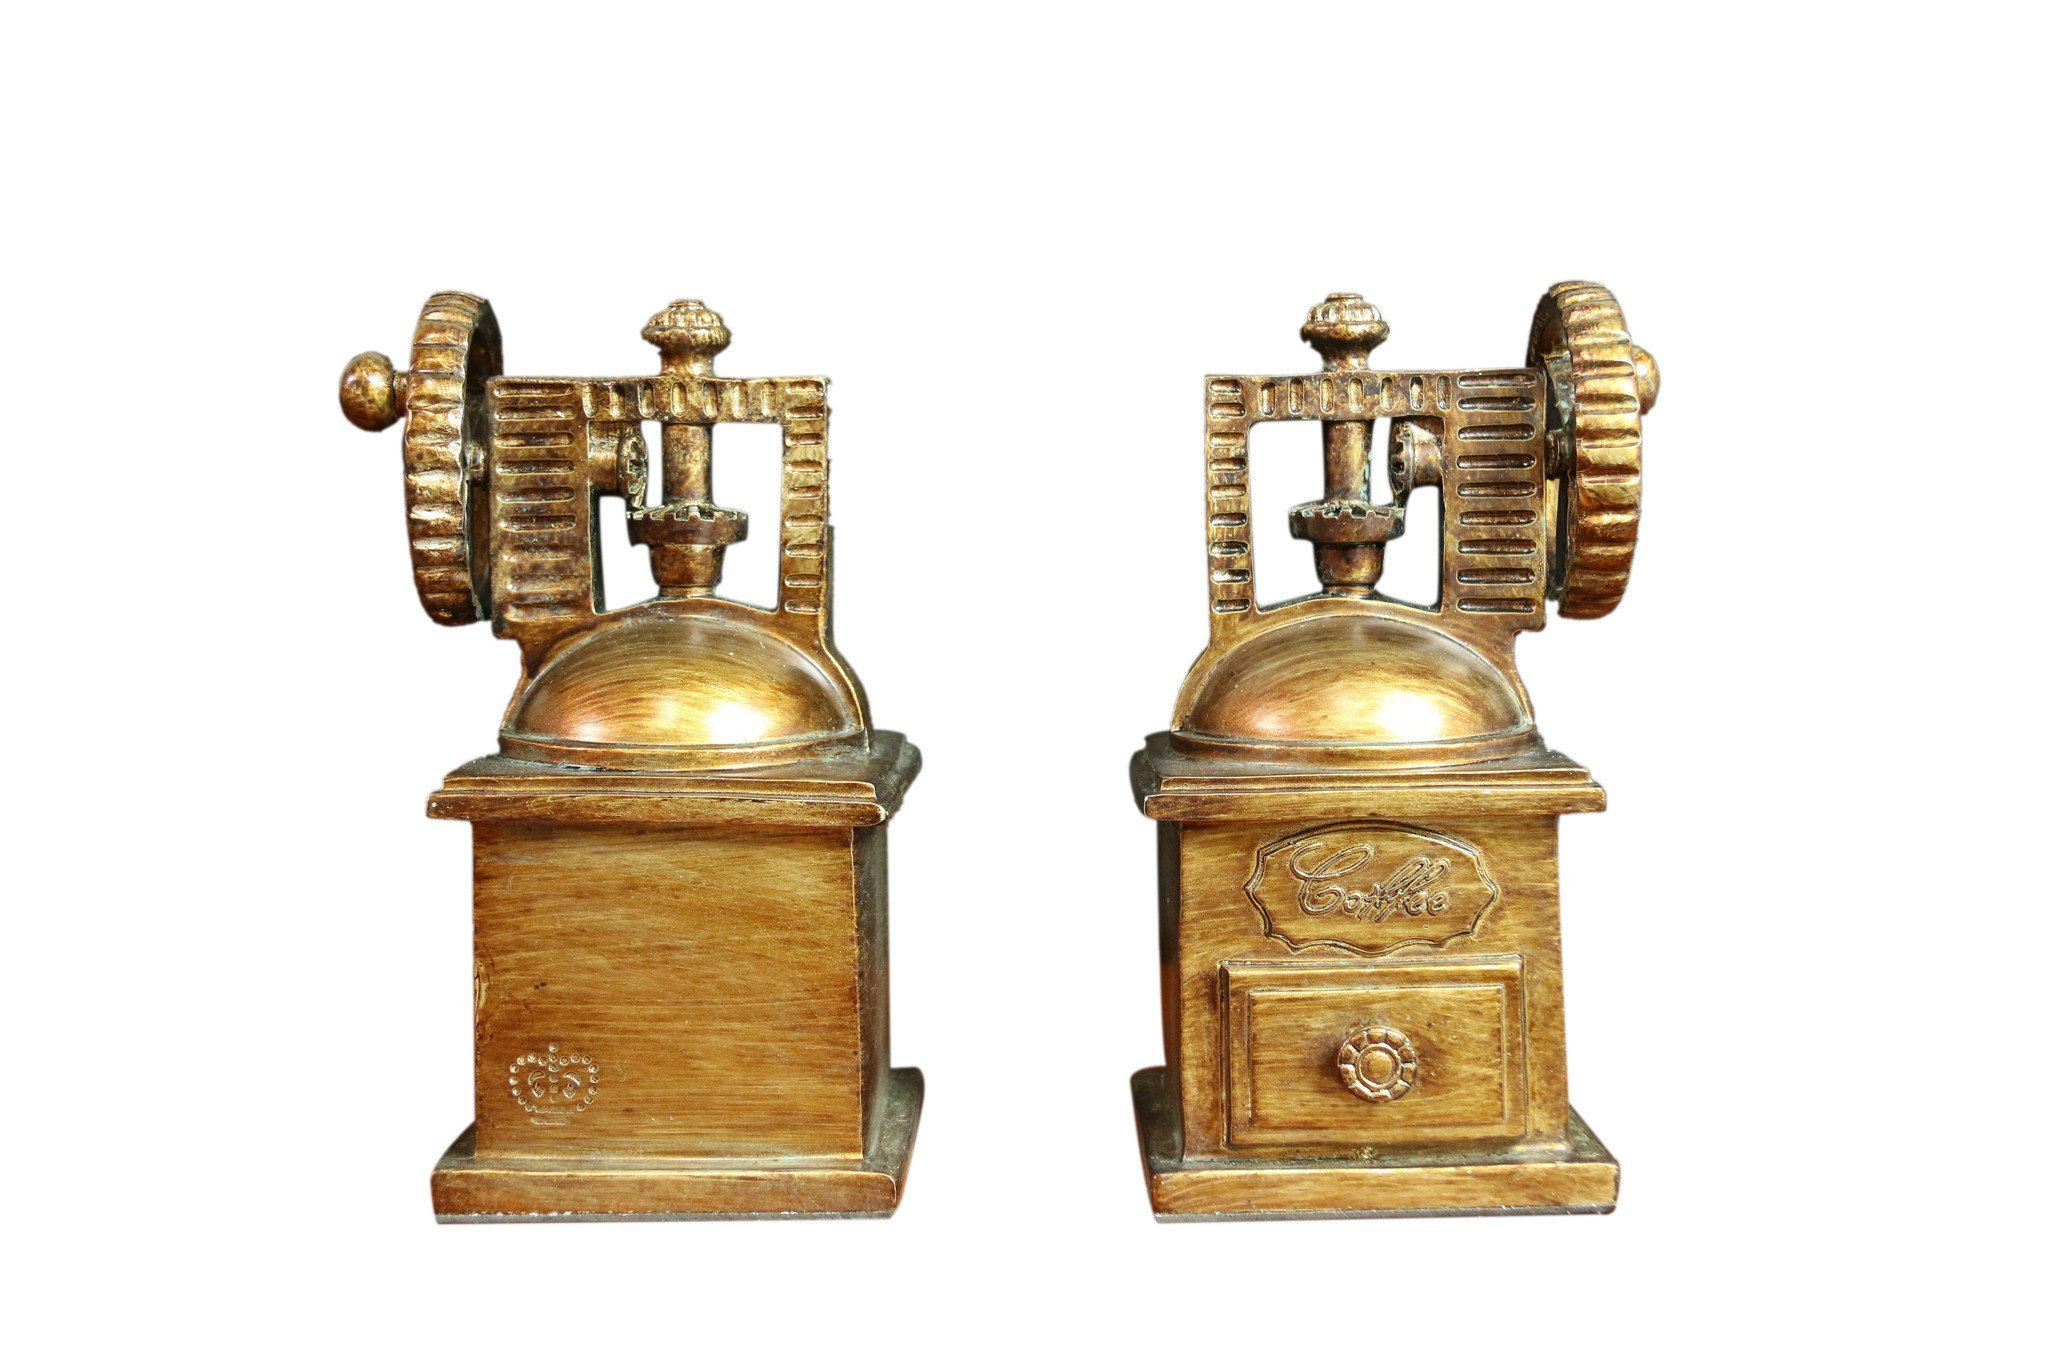 Oh! Trendy™ Vintage Coffee Maker Bookends   Heavy Duty Decorative Coffee Maker Bookend Set Home Decor - 2 Piece Set by Oh! Trendy